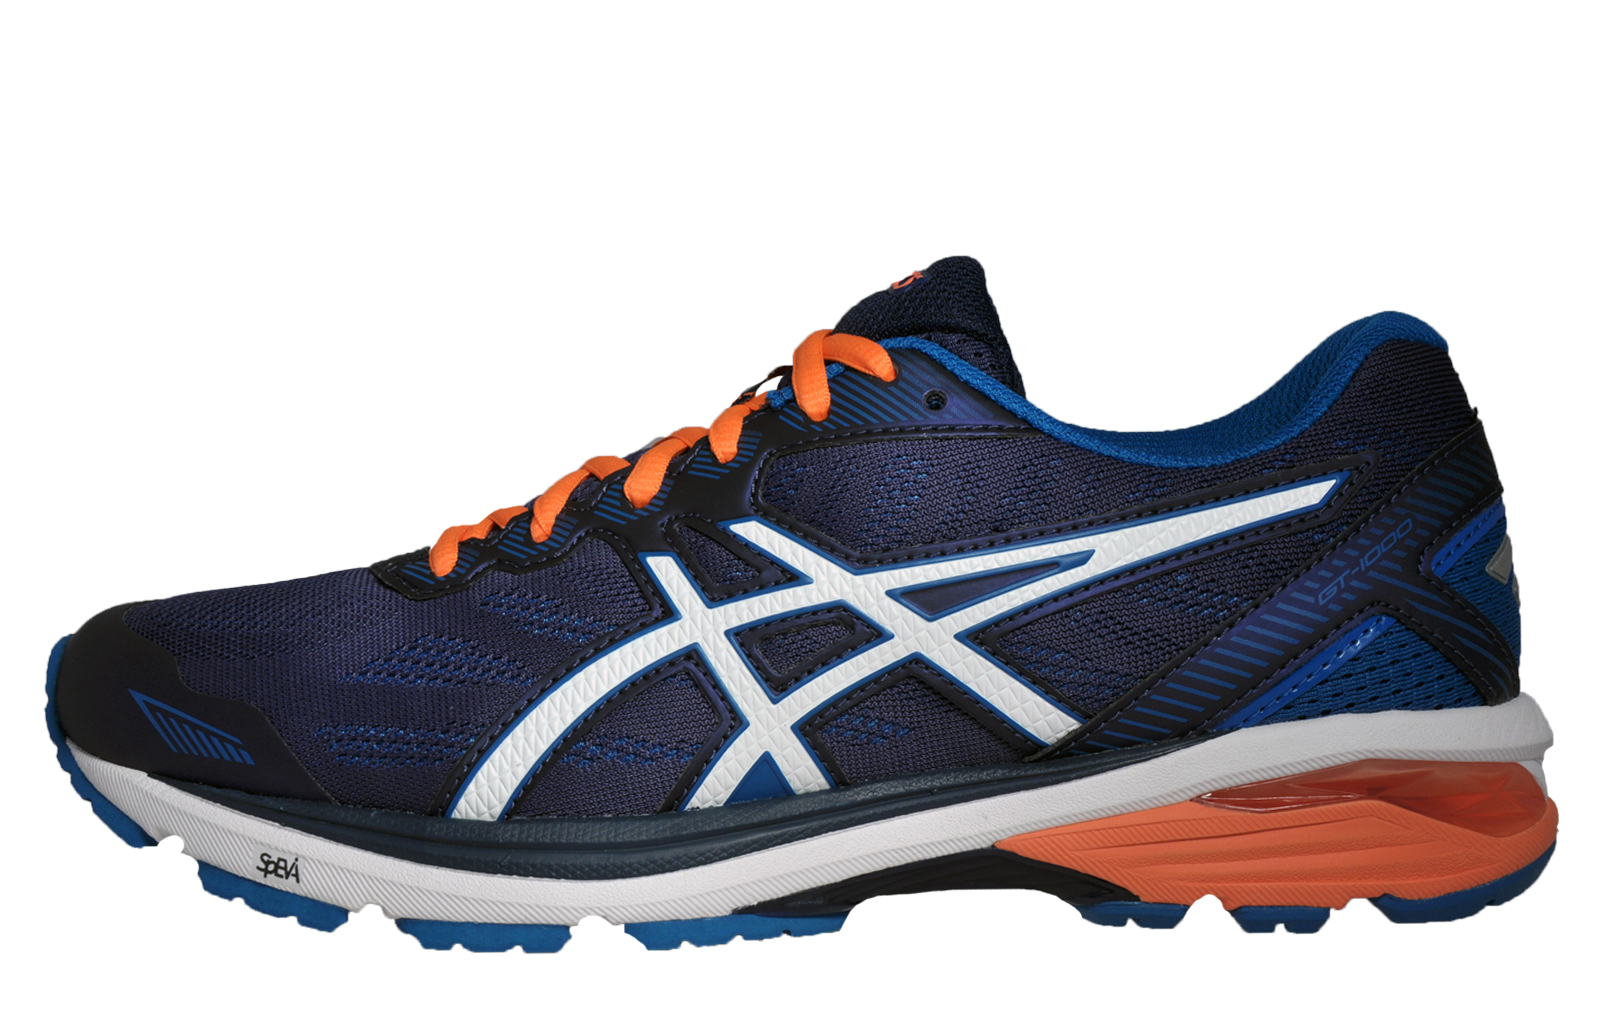 asics gt 1000 5 mens running shoes gym fitness trainers indigo blue new in 2017 ebay. Black Bedroom Furniture Sets. Home Design Ideas